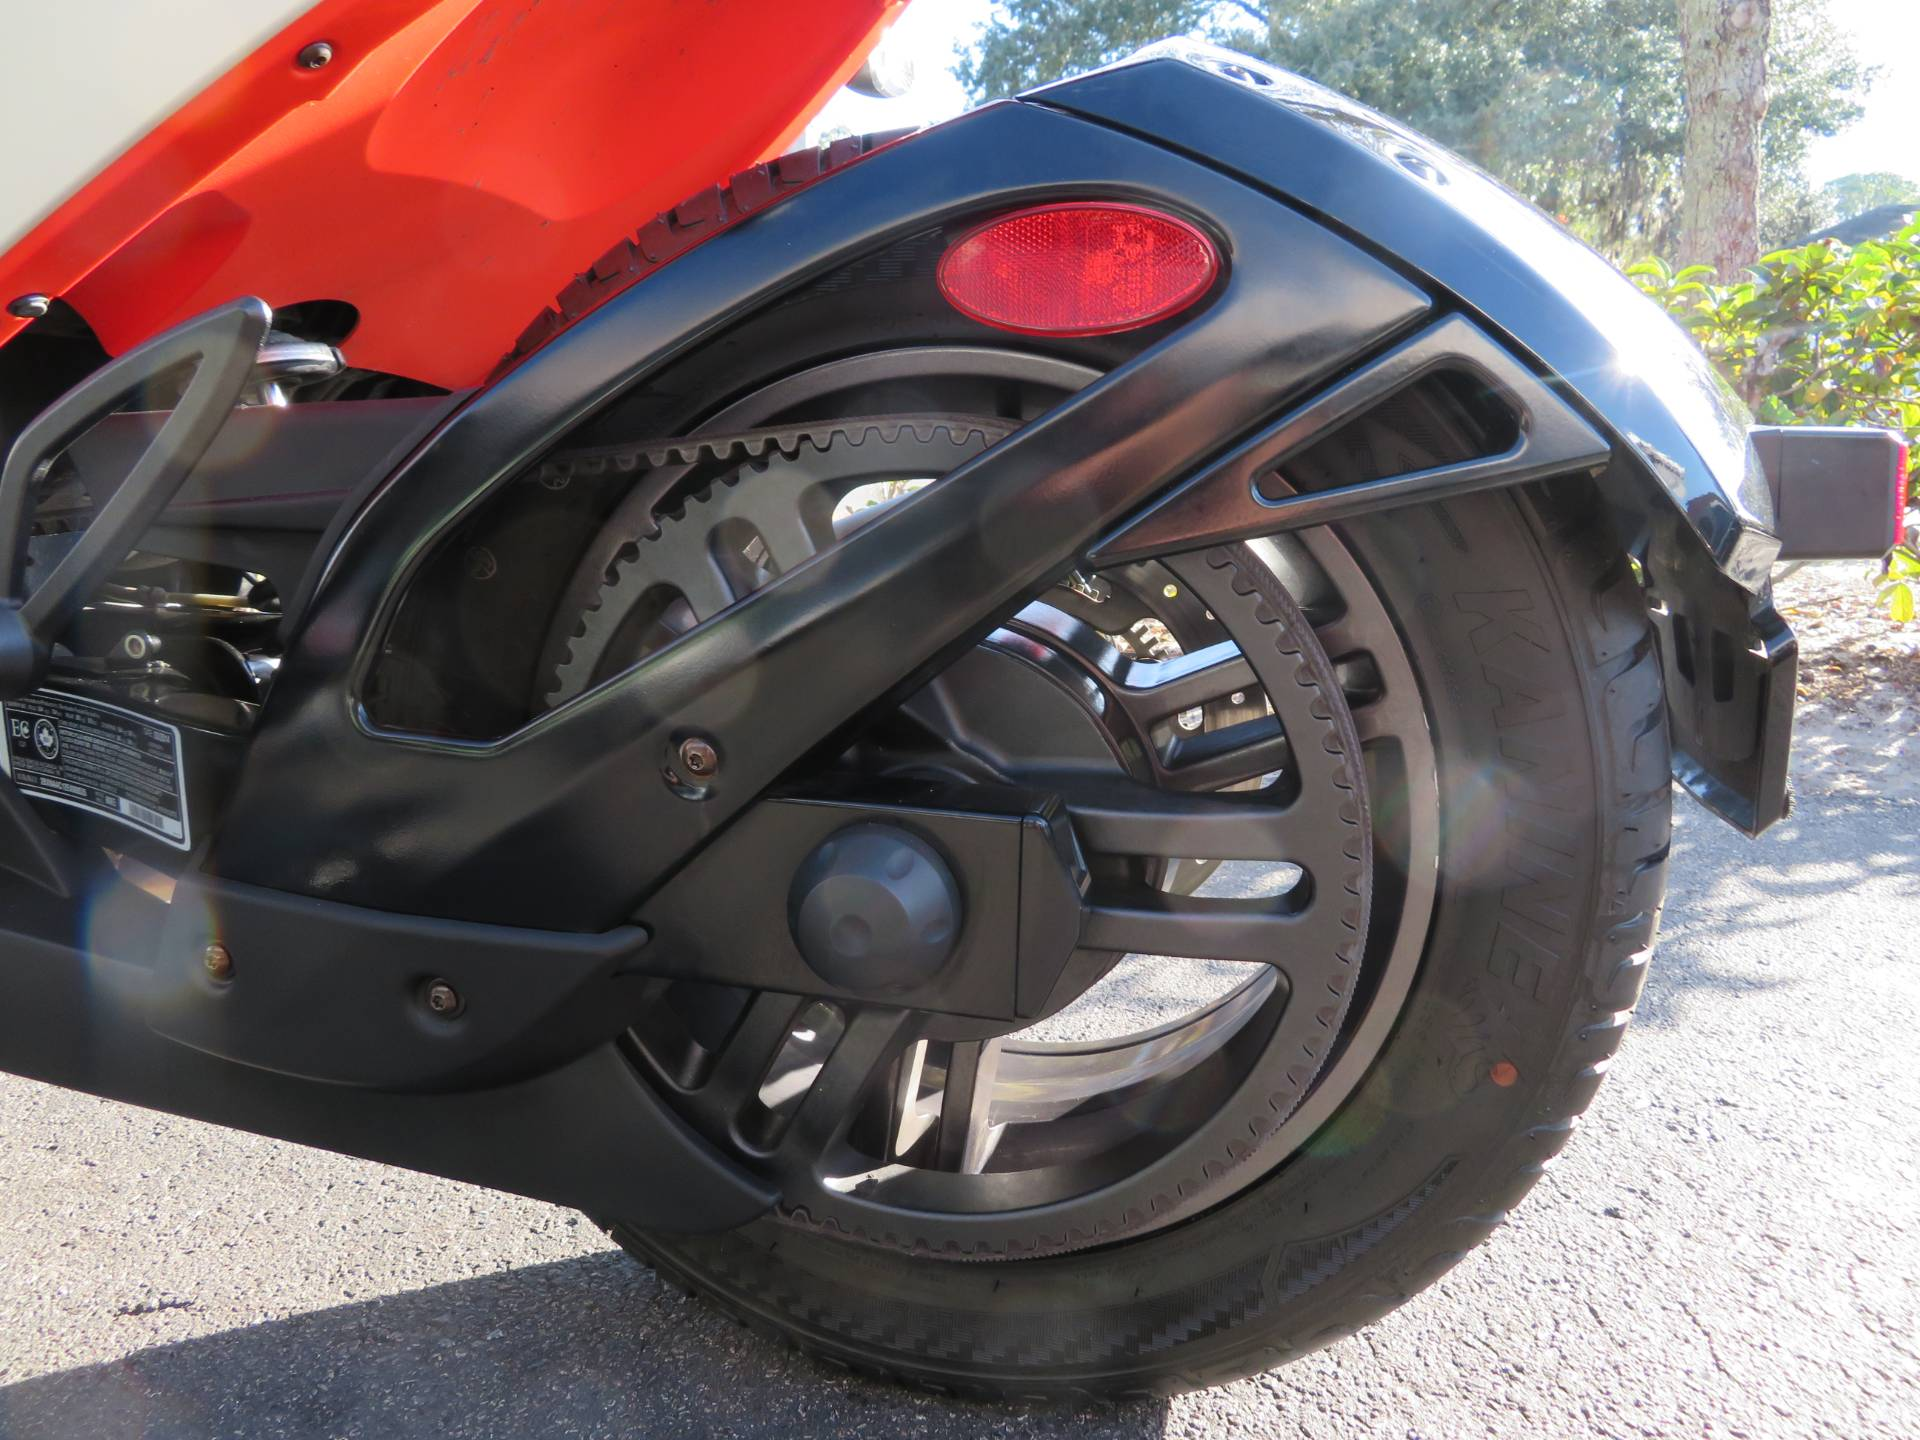 2014 Can-Am Spyder® RS-S SM5 in Sanford, Florida - Photo 11